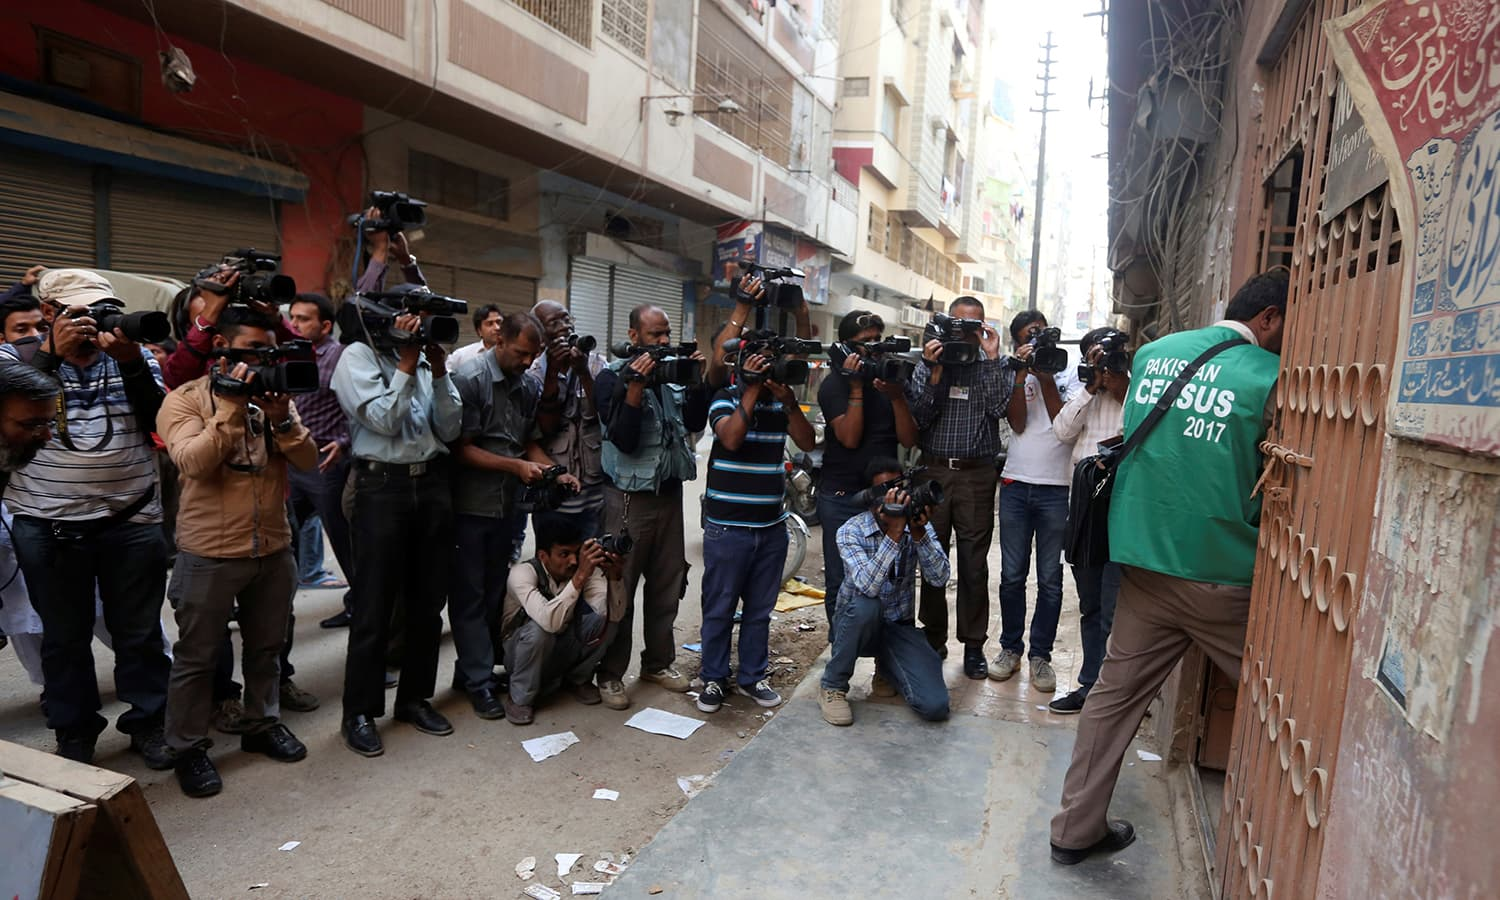 Cameramen and photographers document as a census enumerator enters in a building during Pakistan's 6th population census in Karachi. —Reuters